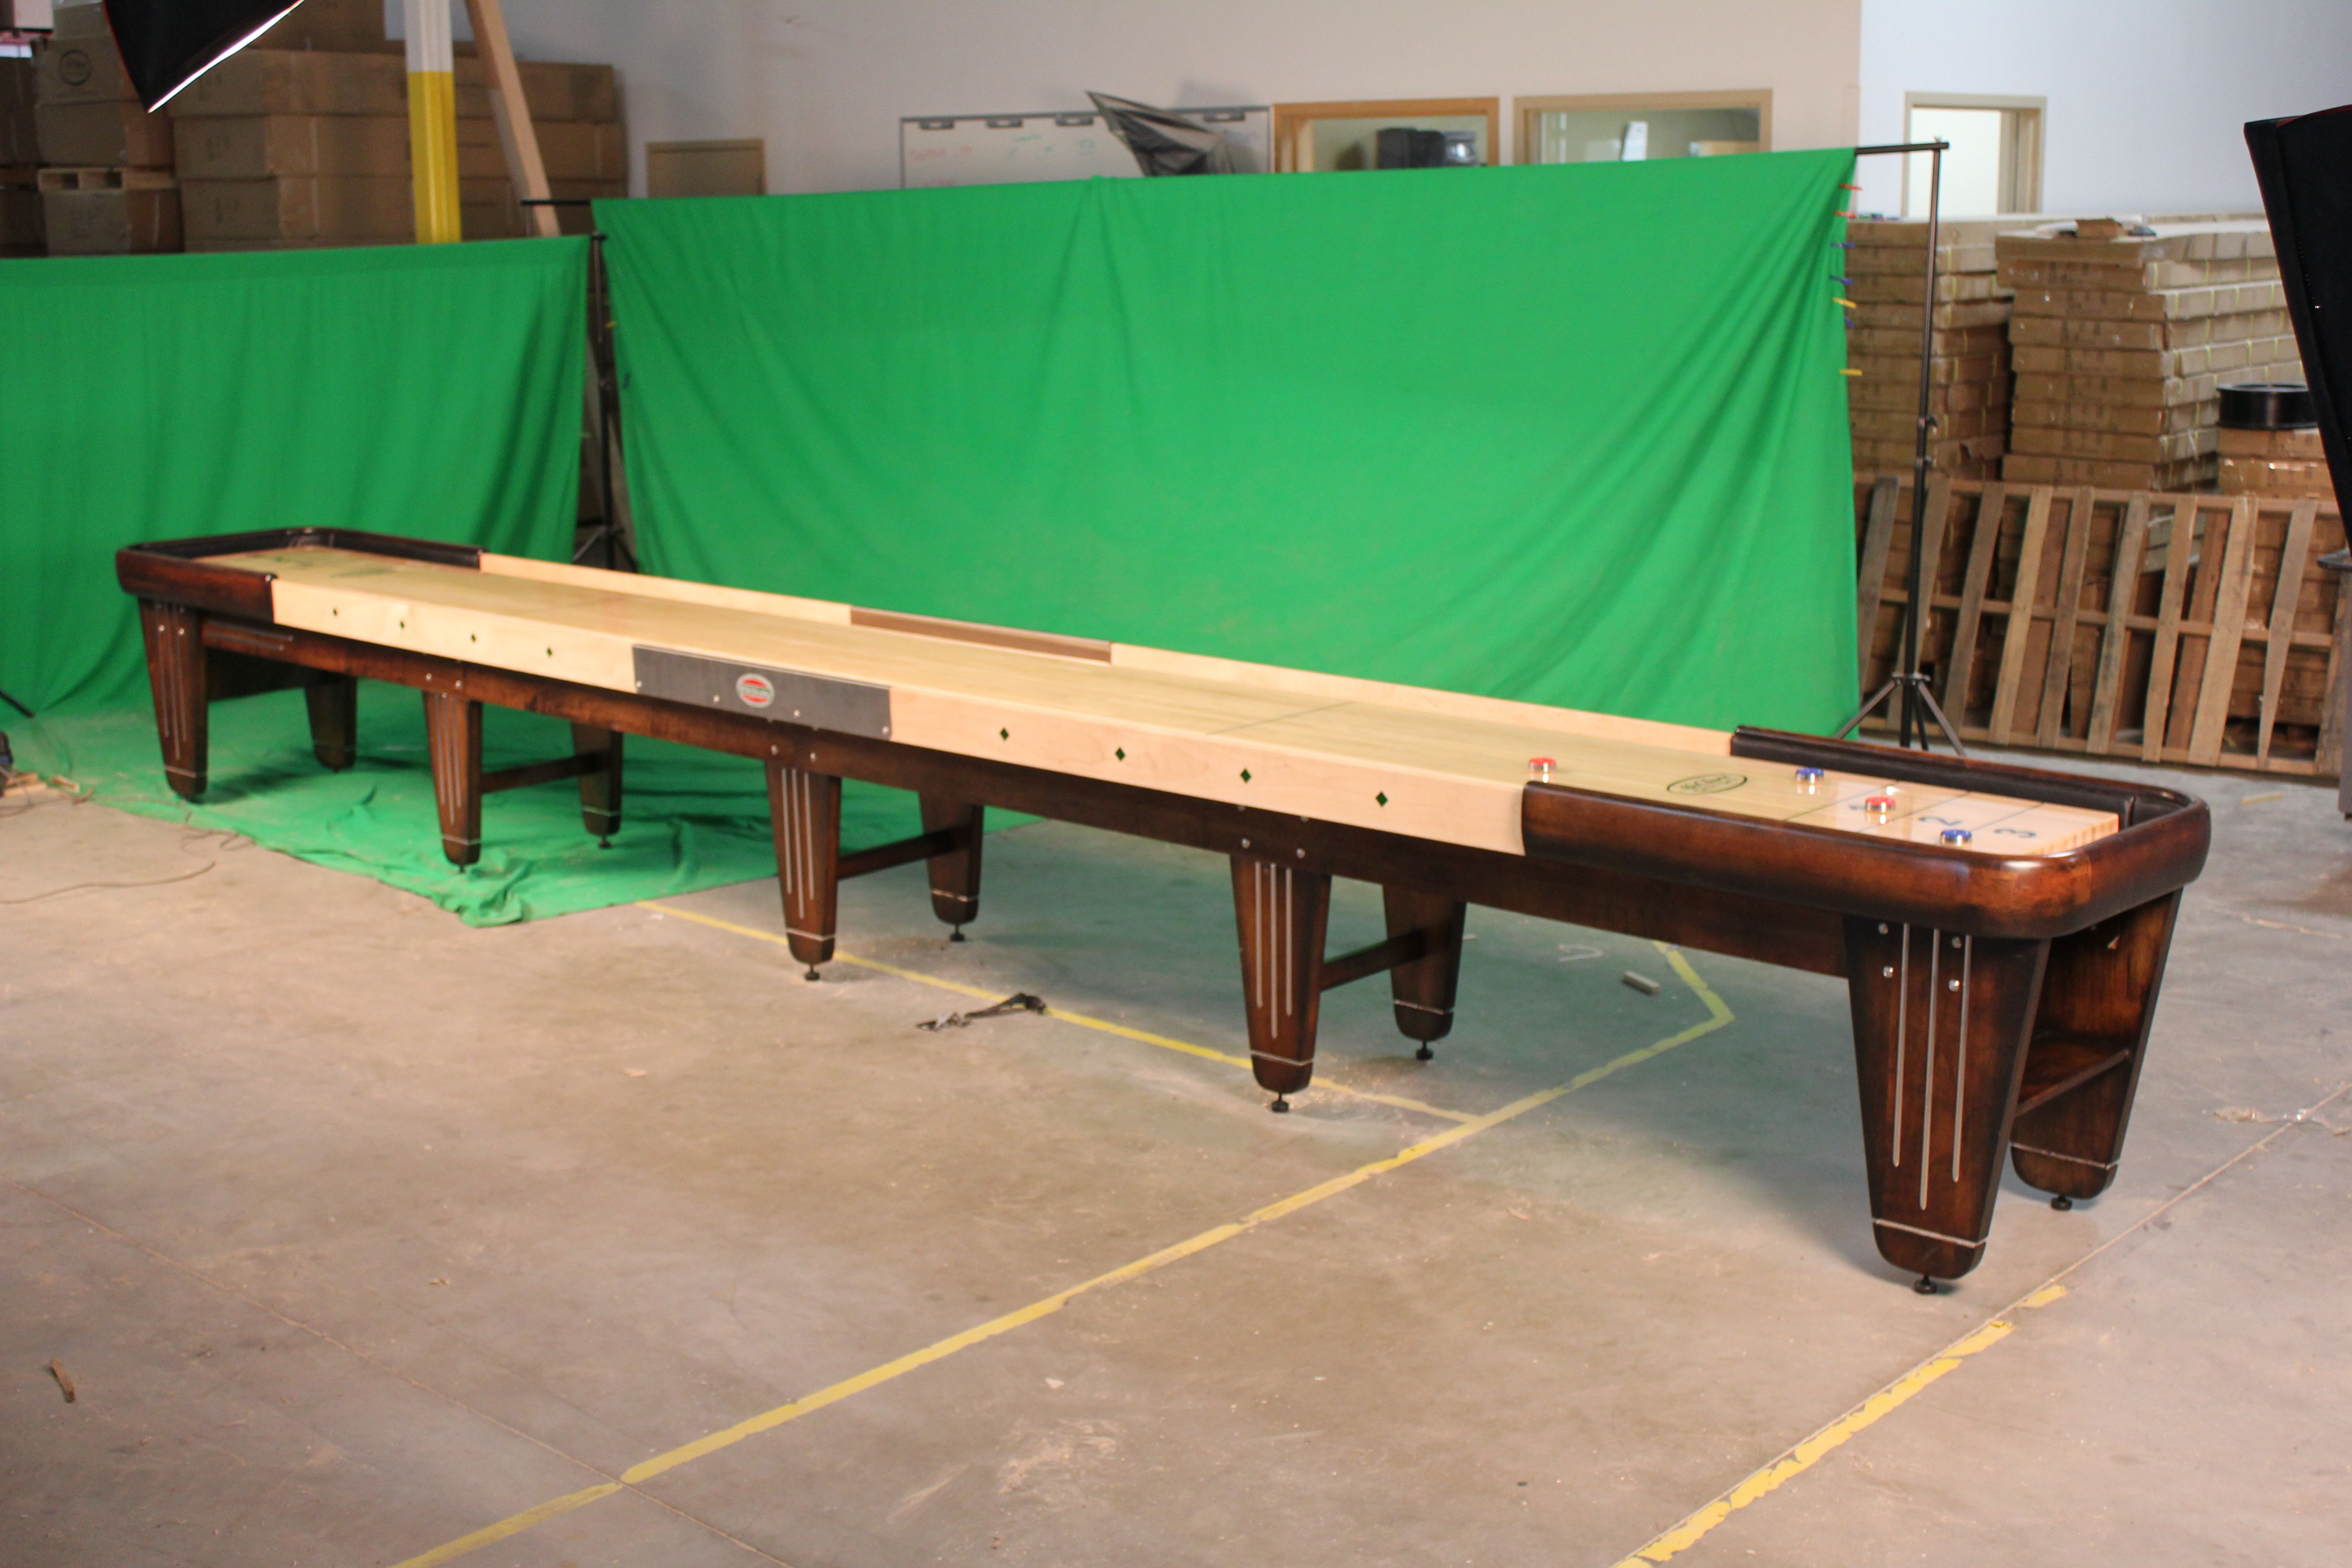 The McClure New Rock Ola Shuffleboard Table Is Made In America And  Handcrafted From The Highest Quality Local Materials.